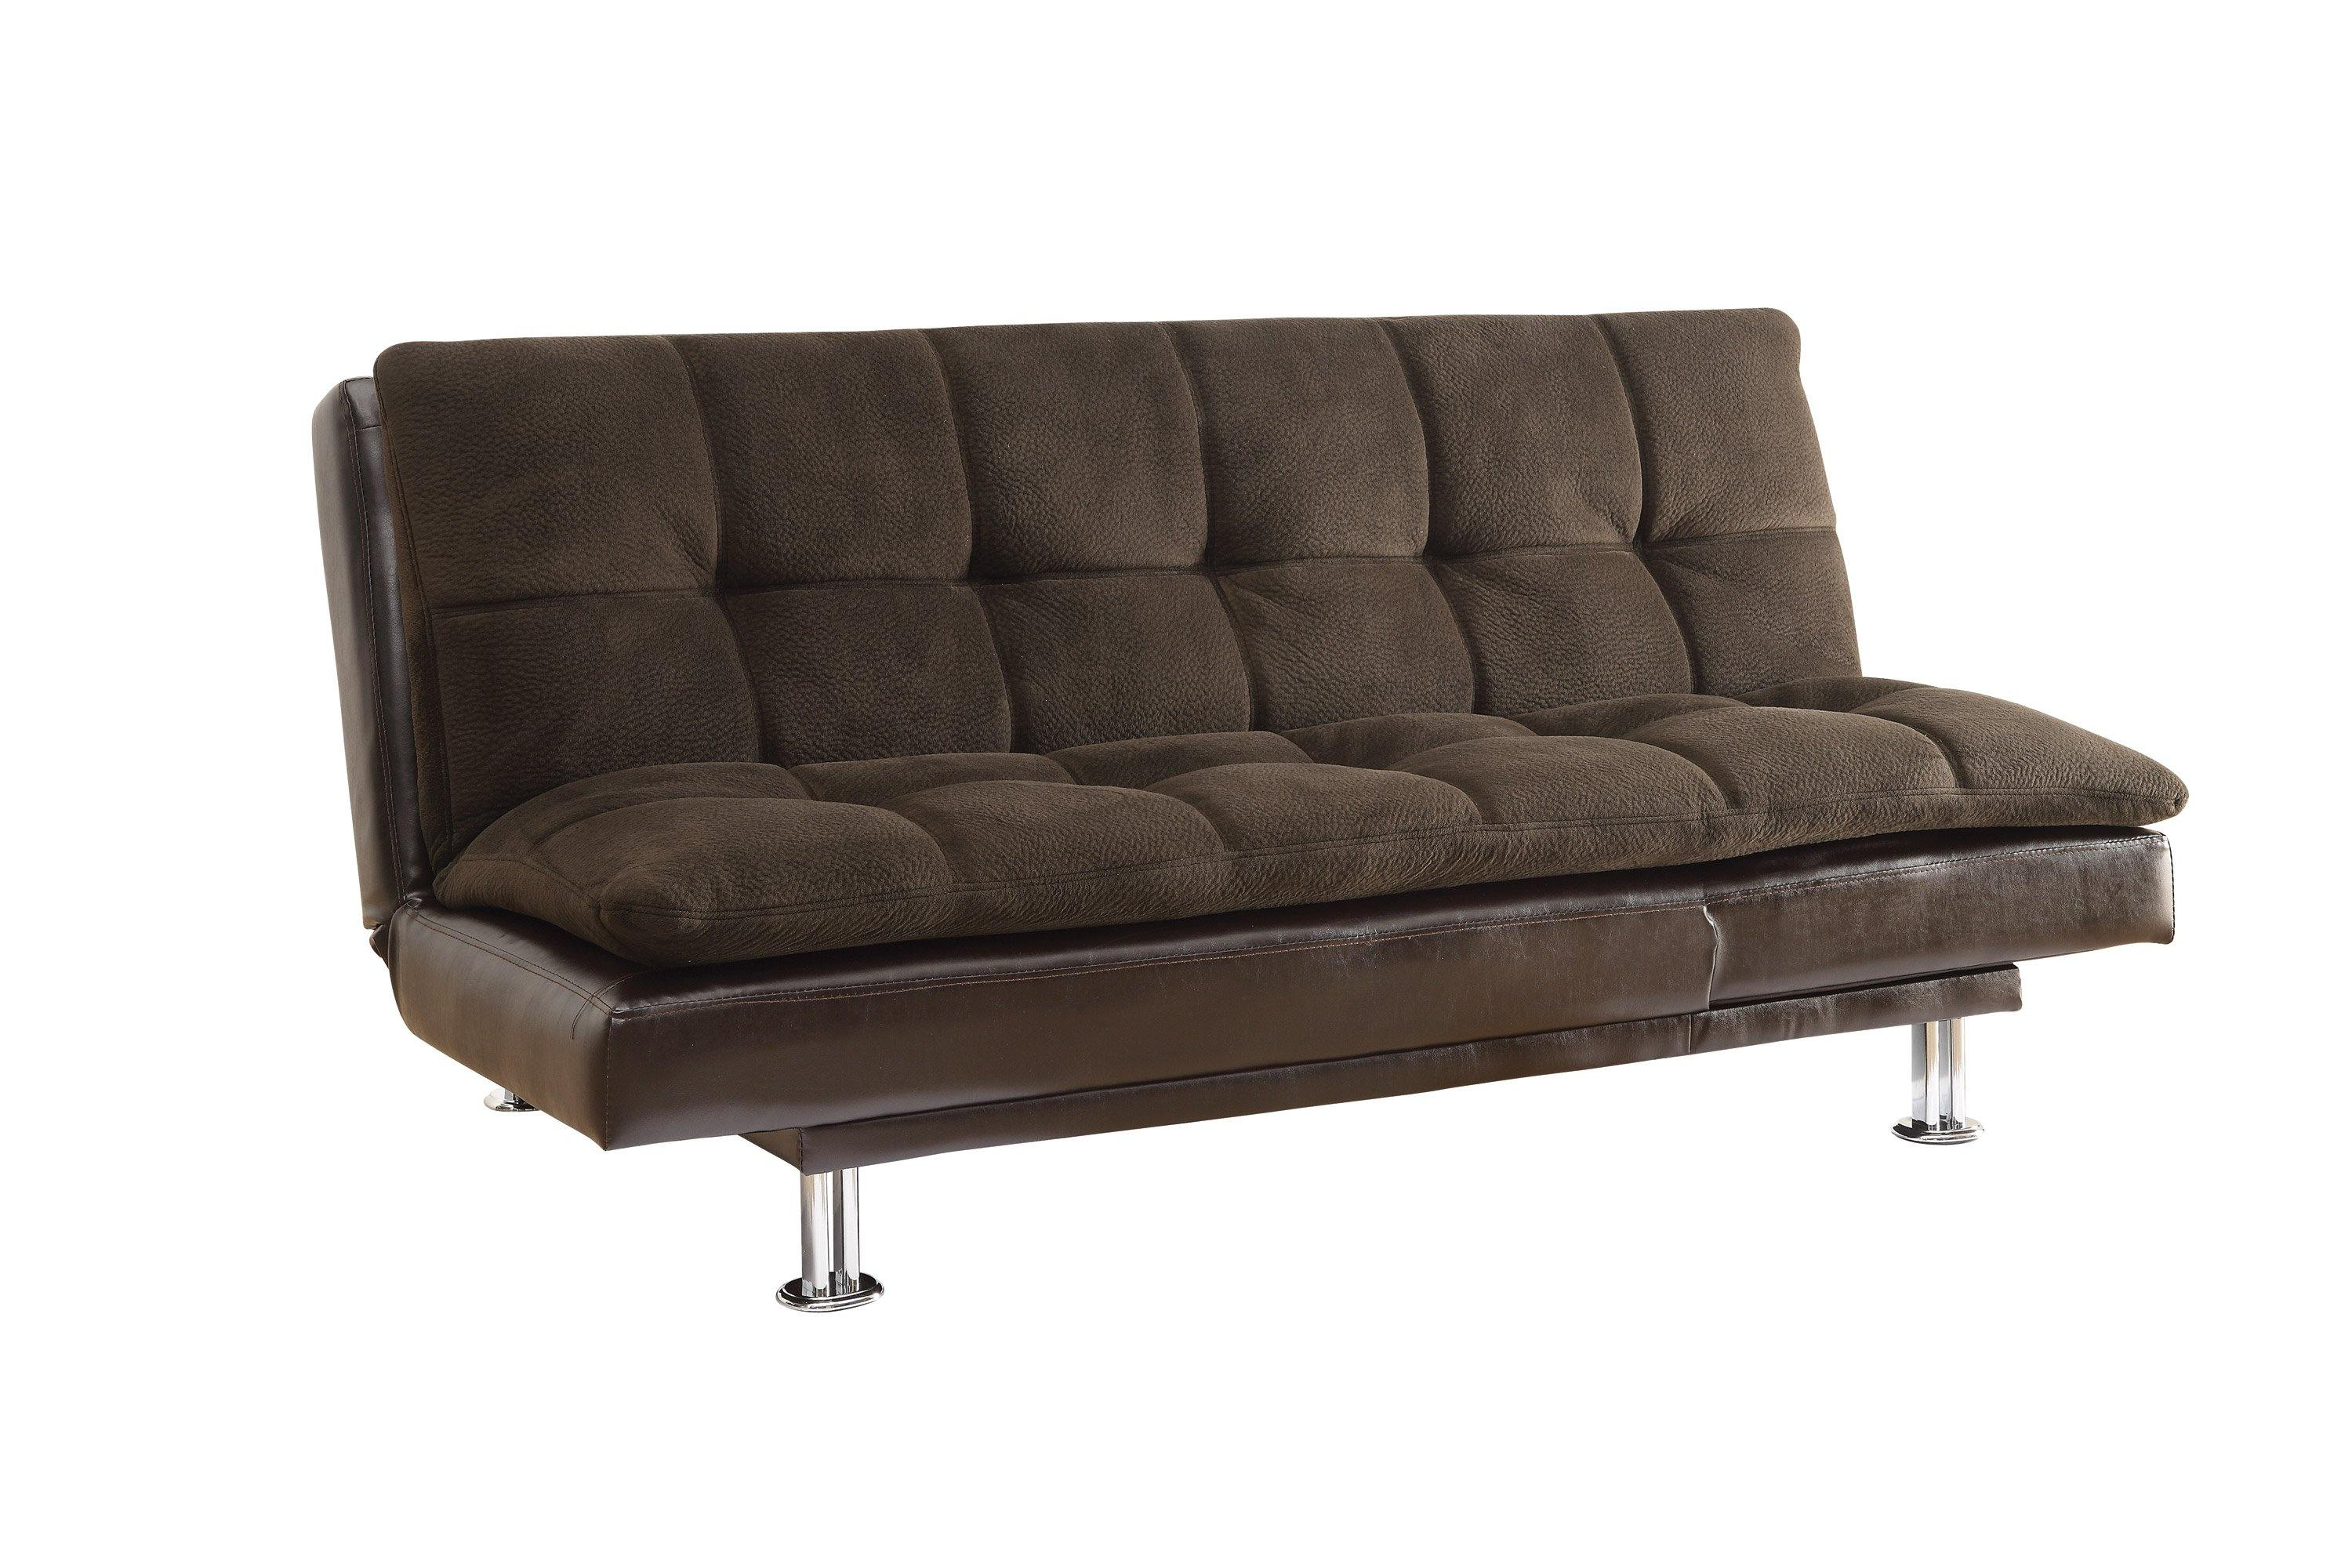 300313 Brown Contemporary Living room : sofa beds By coaster - sofafair.com